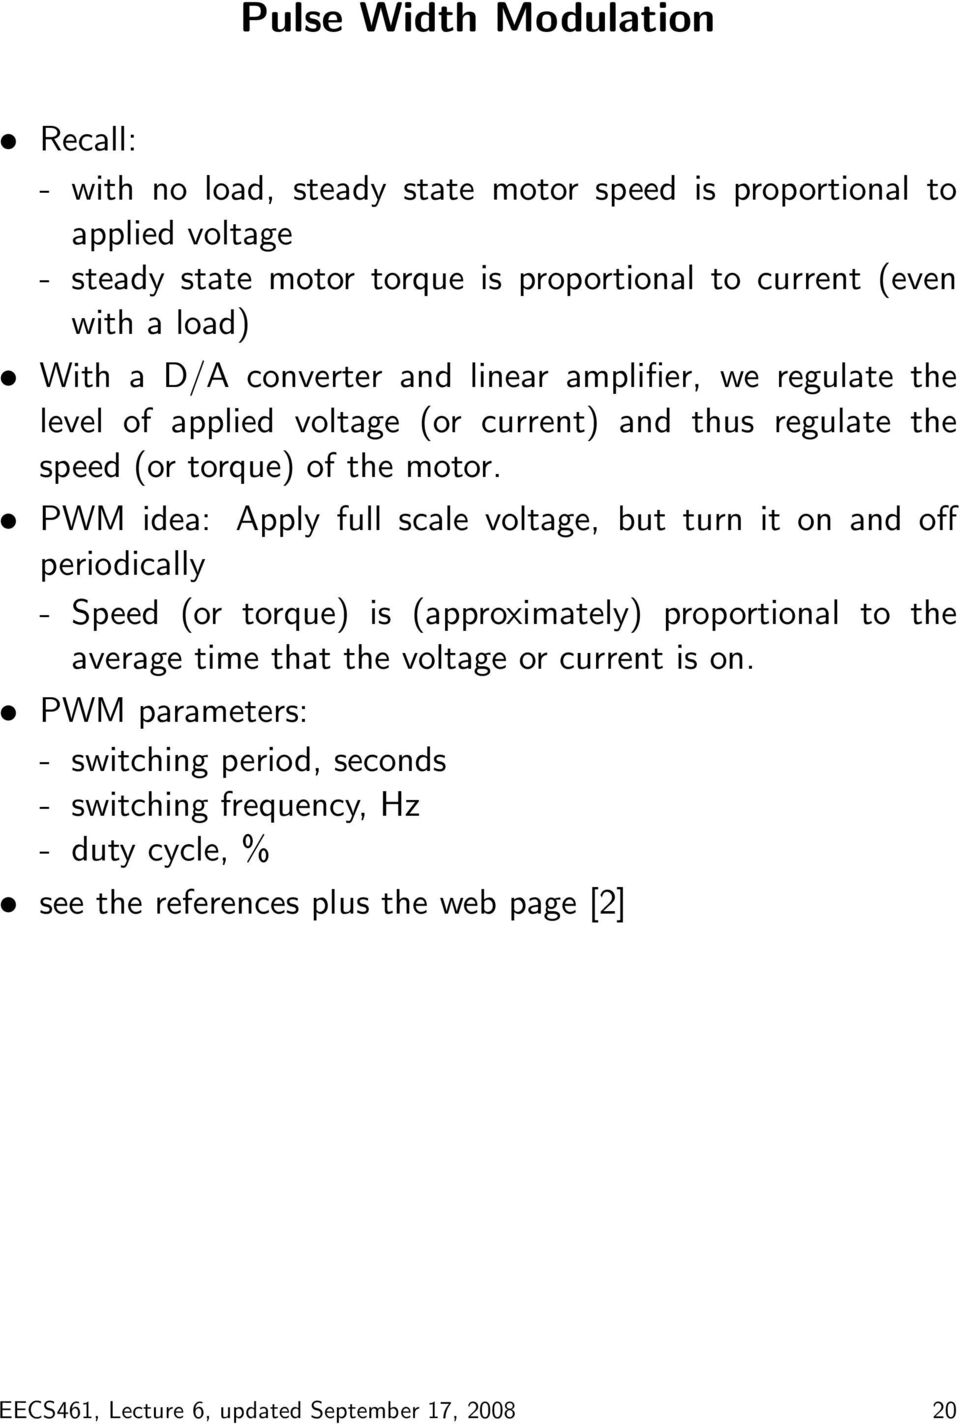 PWM idea: Apply full scale voltage, but turn it on and off periodically - Speed (or torque) is (approximately) proportional to the average time that the voltage or